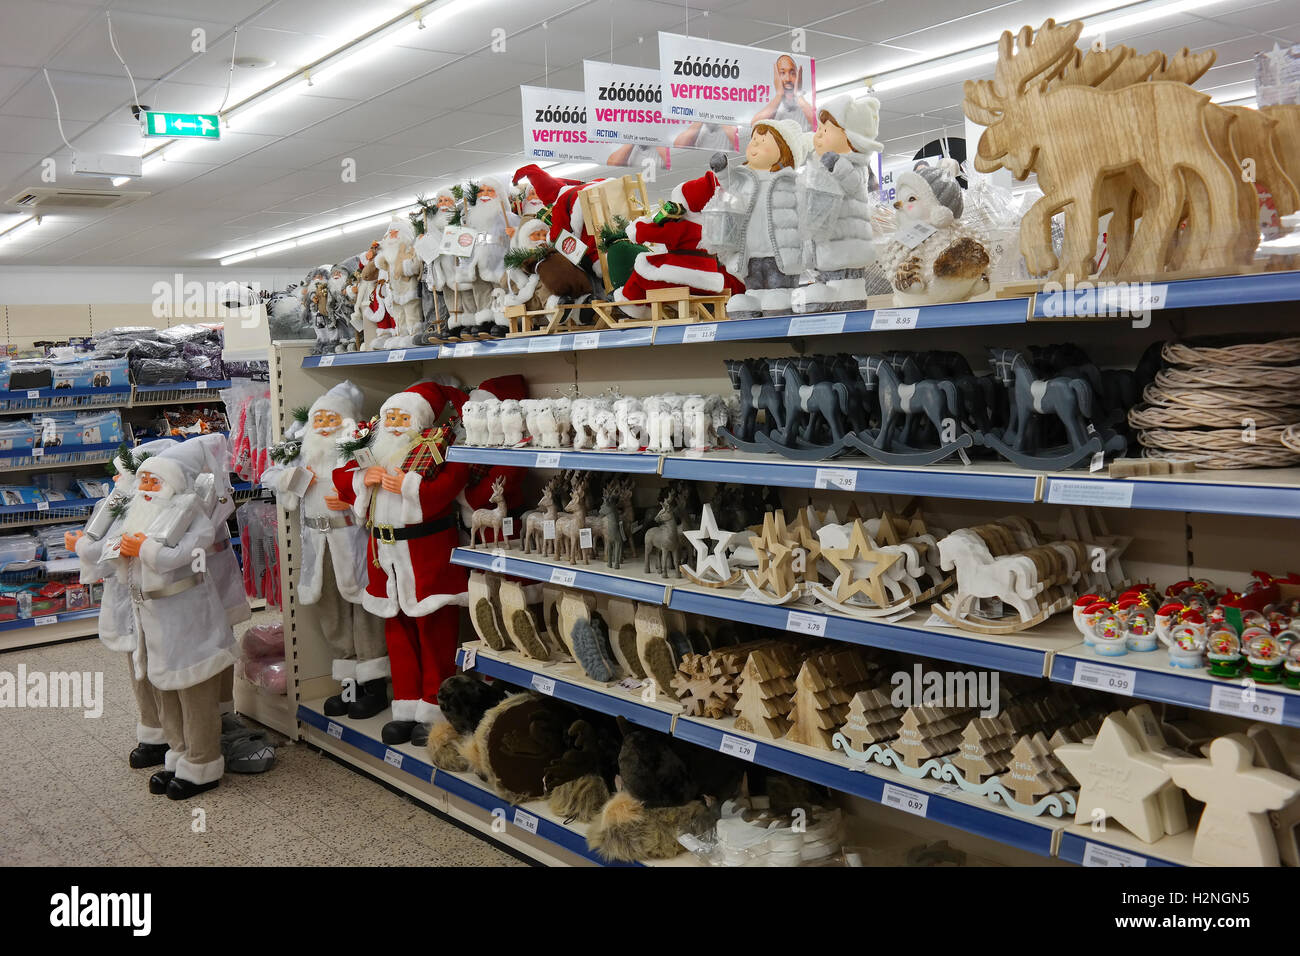 Christmas decorations and Christmas articles in a Superstore - Stock Image